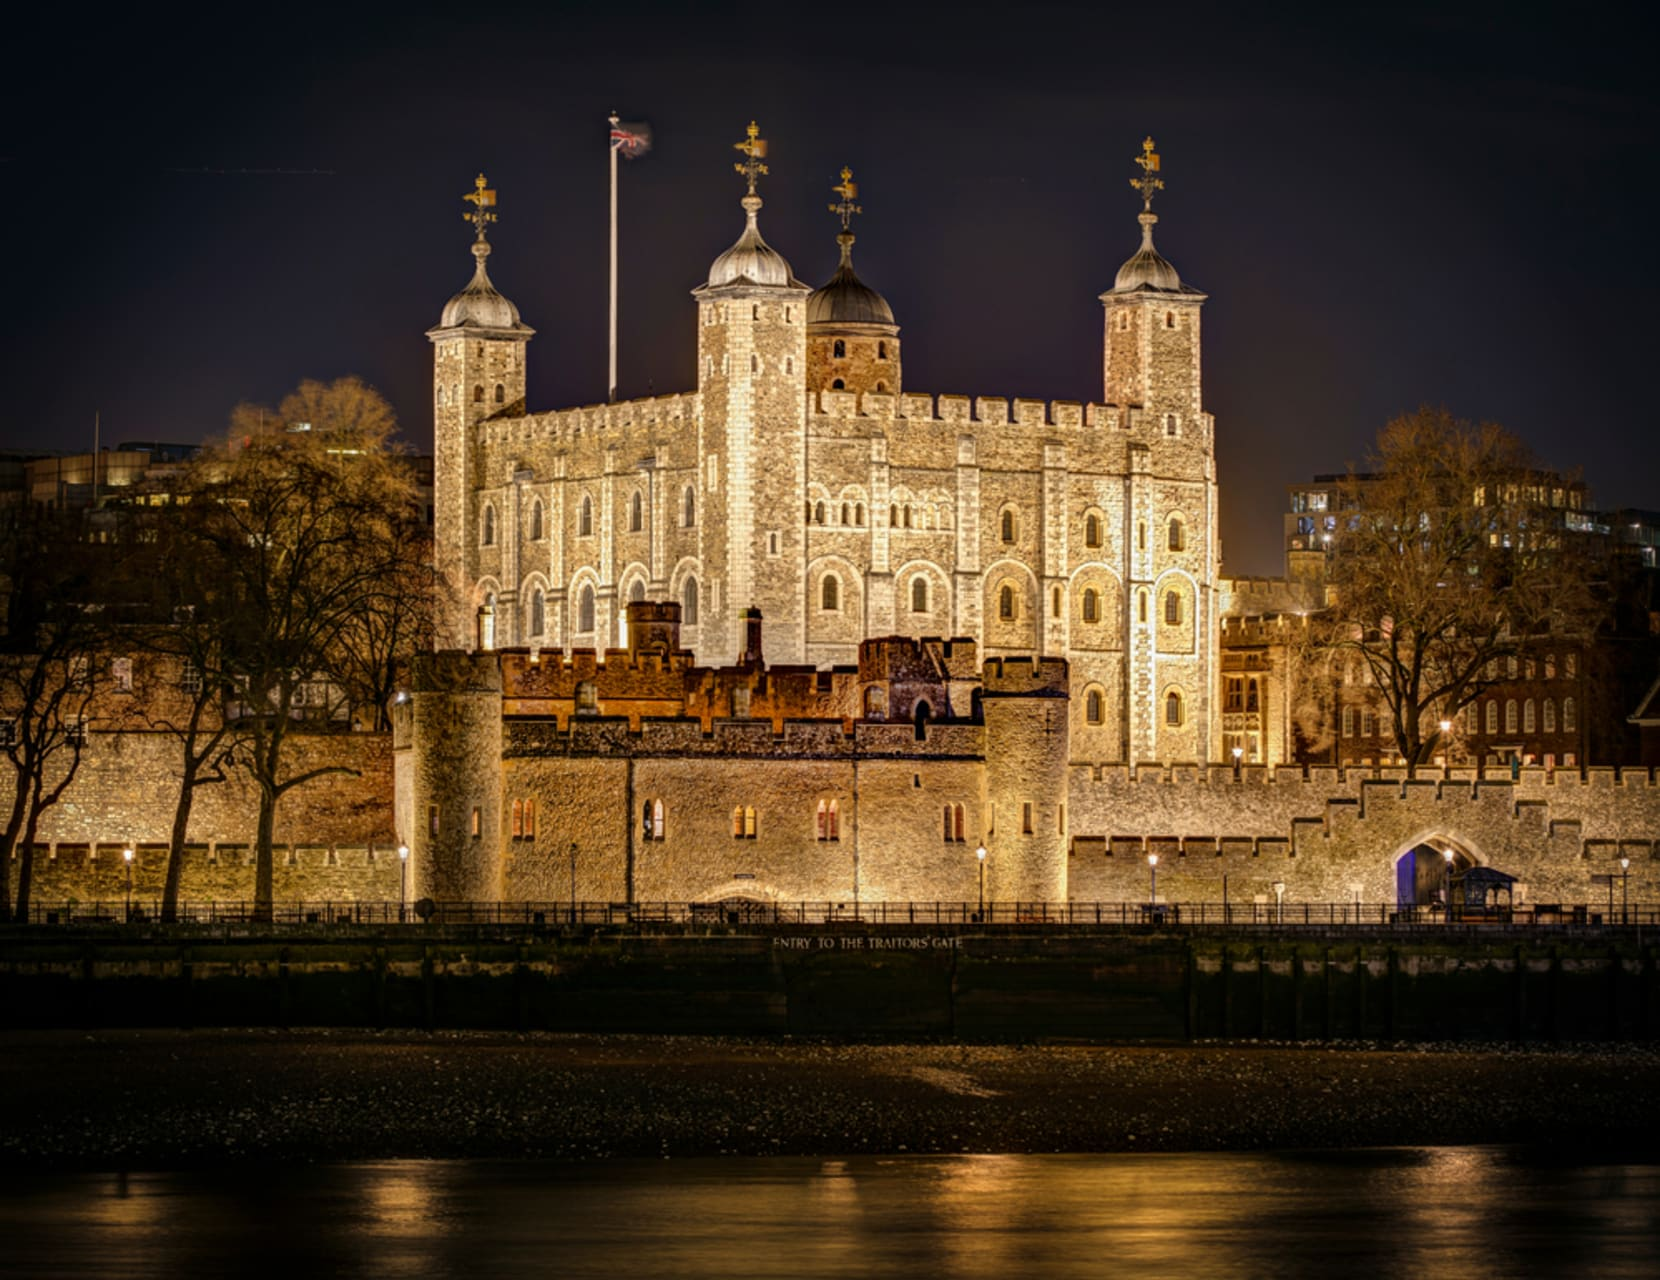 London - Haunted London! A sinister look at London's most spine-chilling site: The Tower of London!